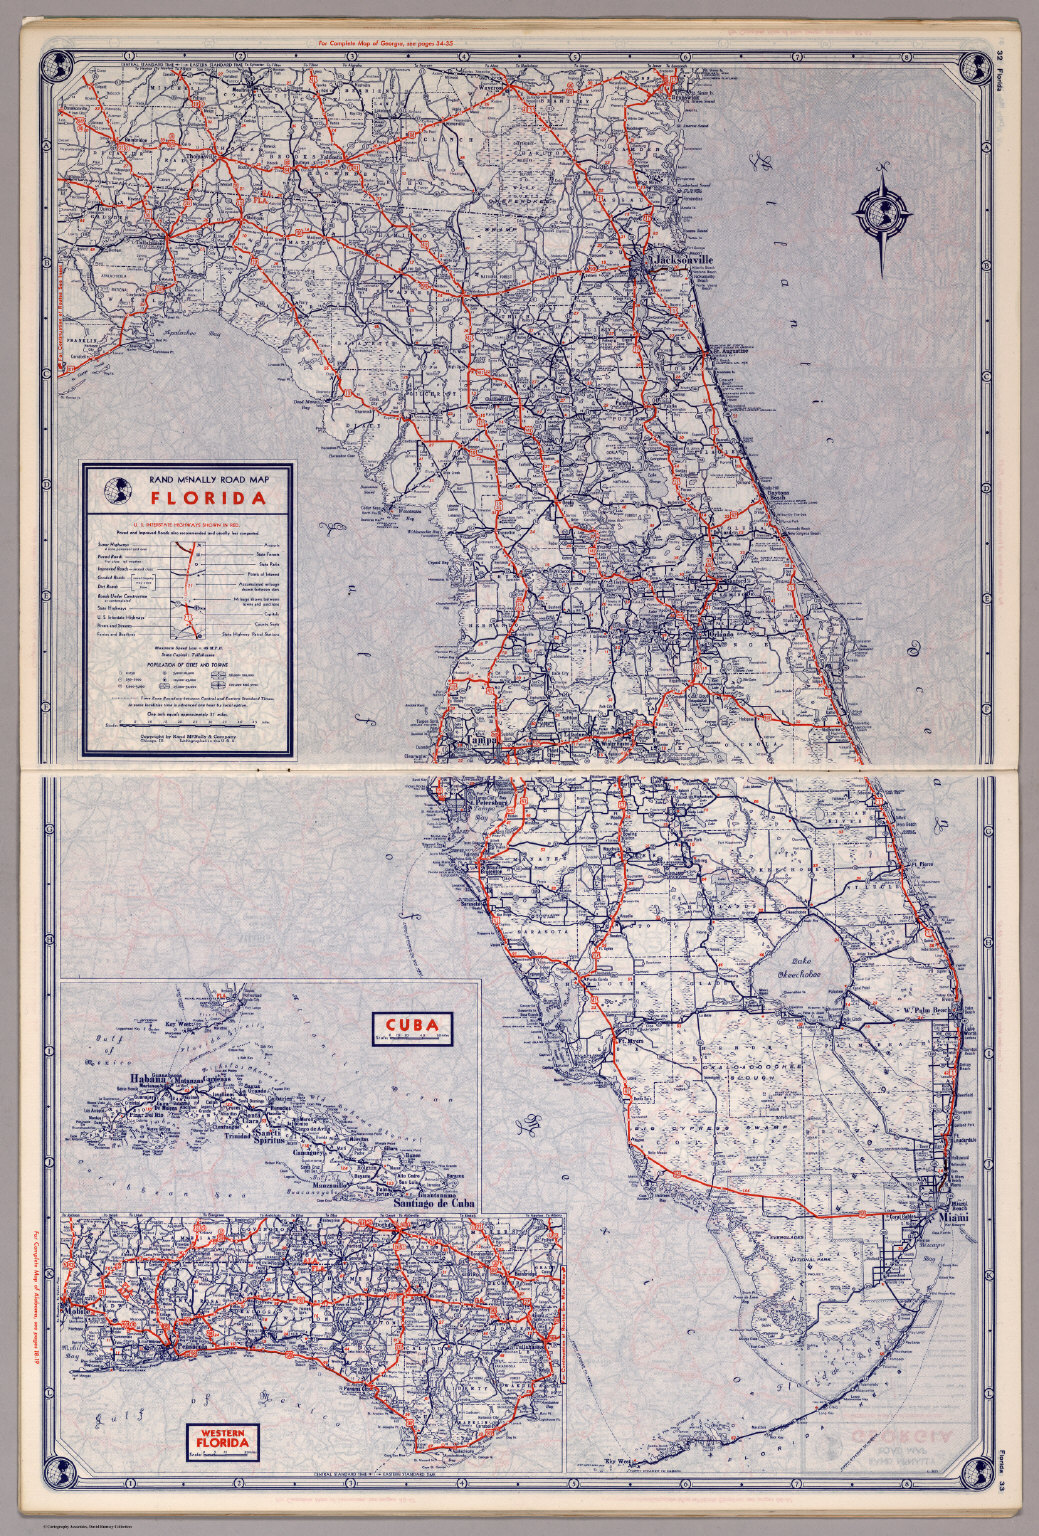 Map Of Florida And Cuba.Rand Mcnally Road Map Florida David Rumsey Historical Map Collection